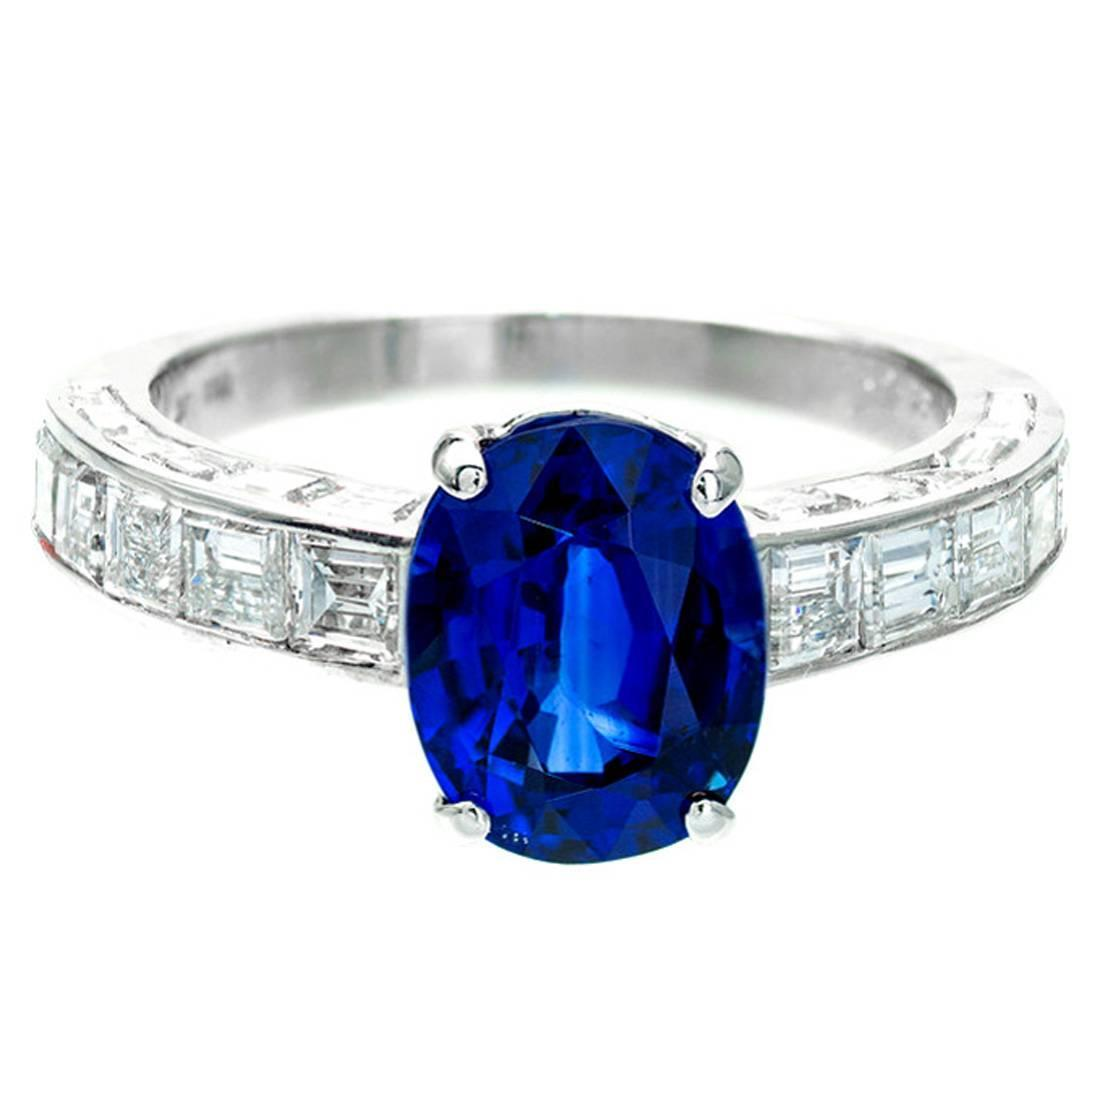 diamond rings large context stone sapphire and white engagement jewellery ring p three gold